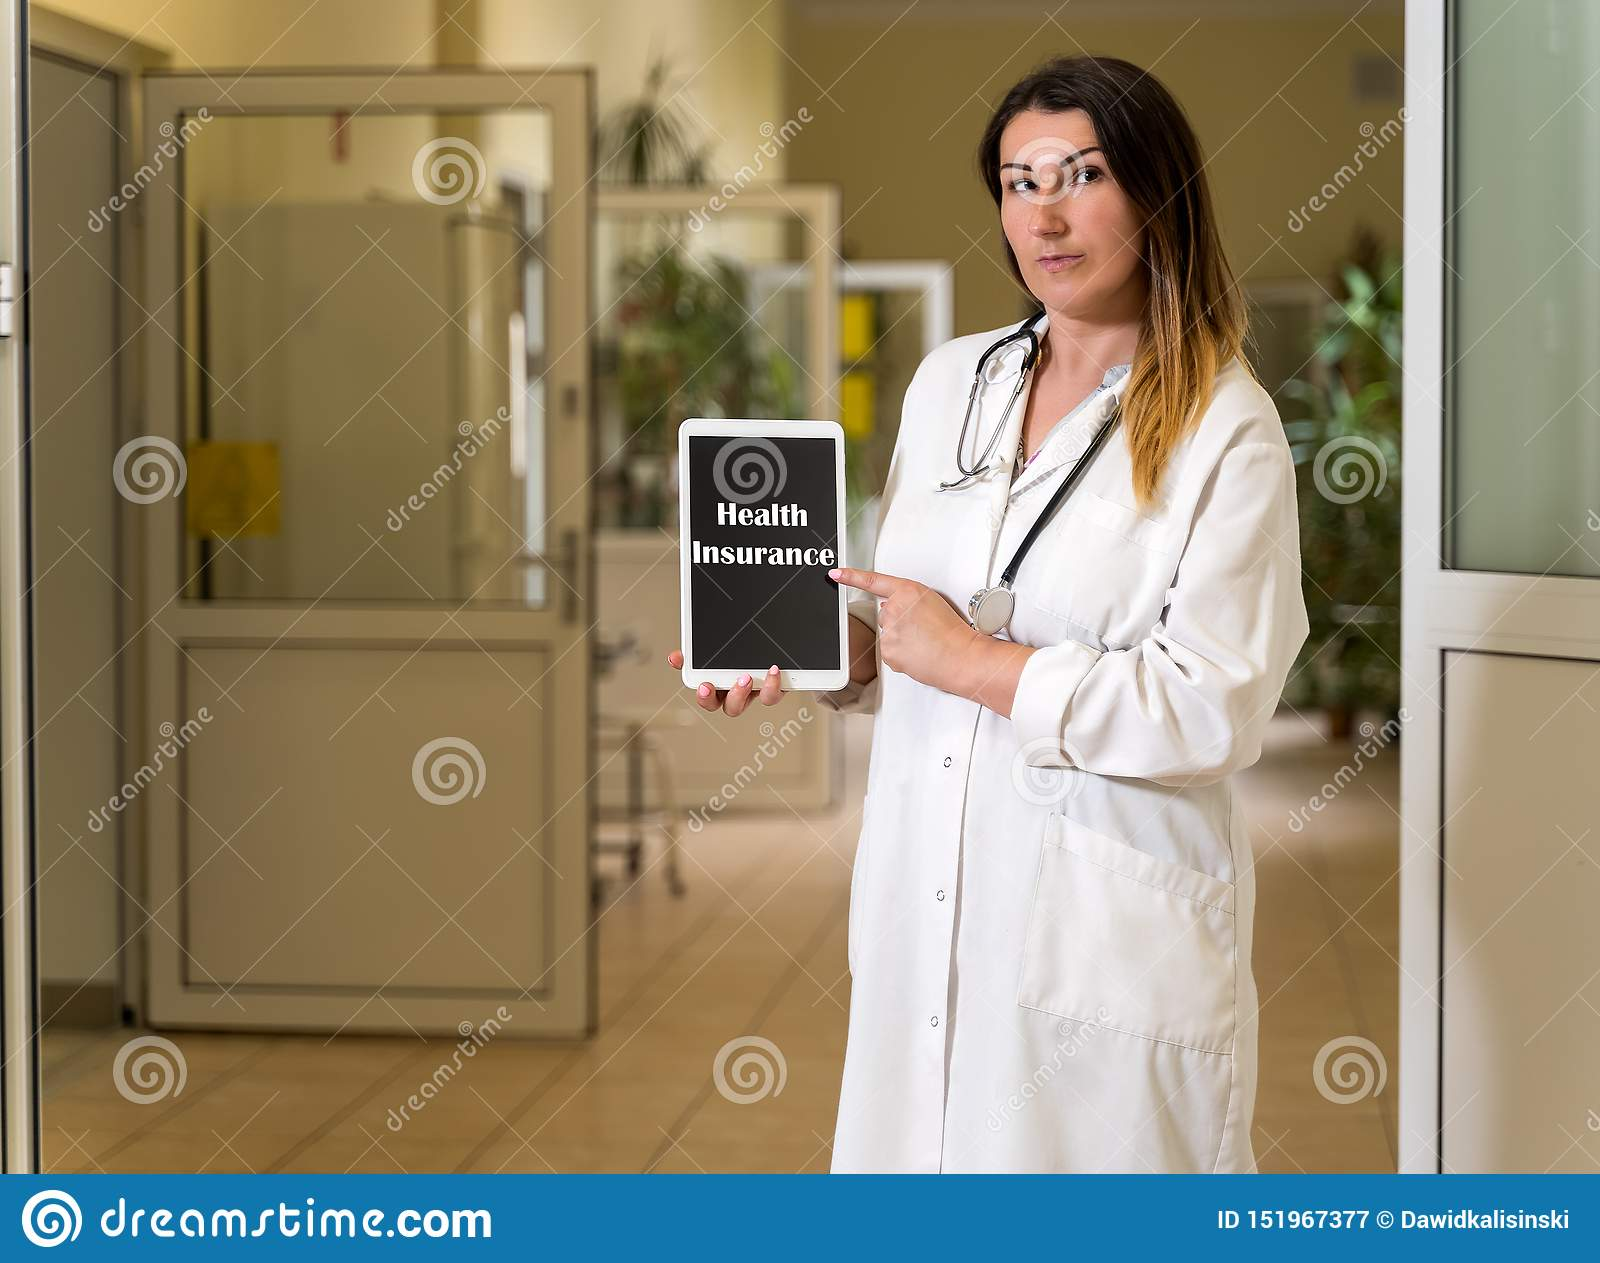 Middle age female doctor in white robe holding and pointing to tablet with Health Insurance text